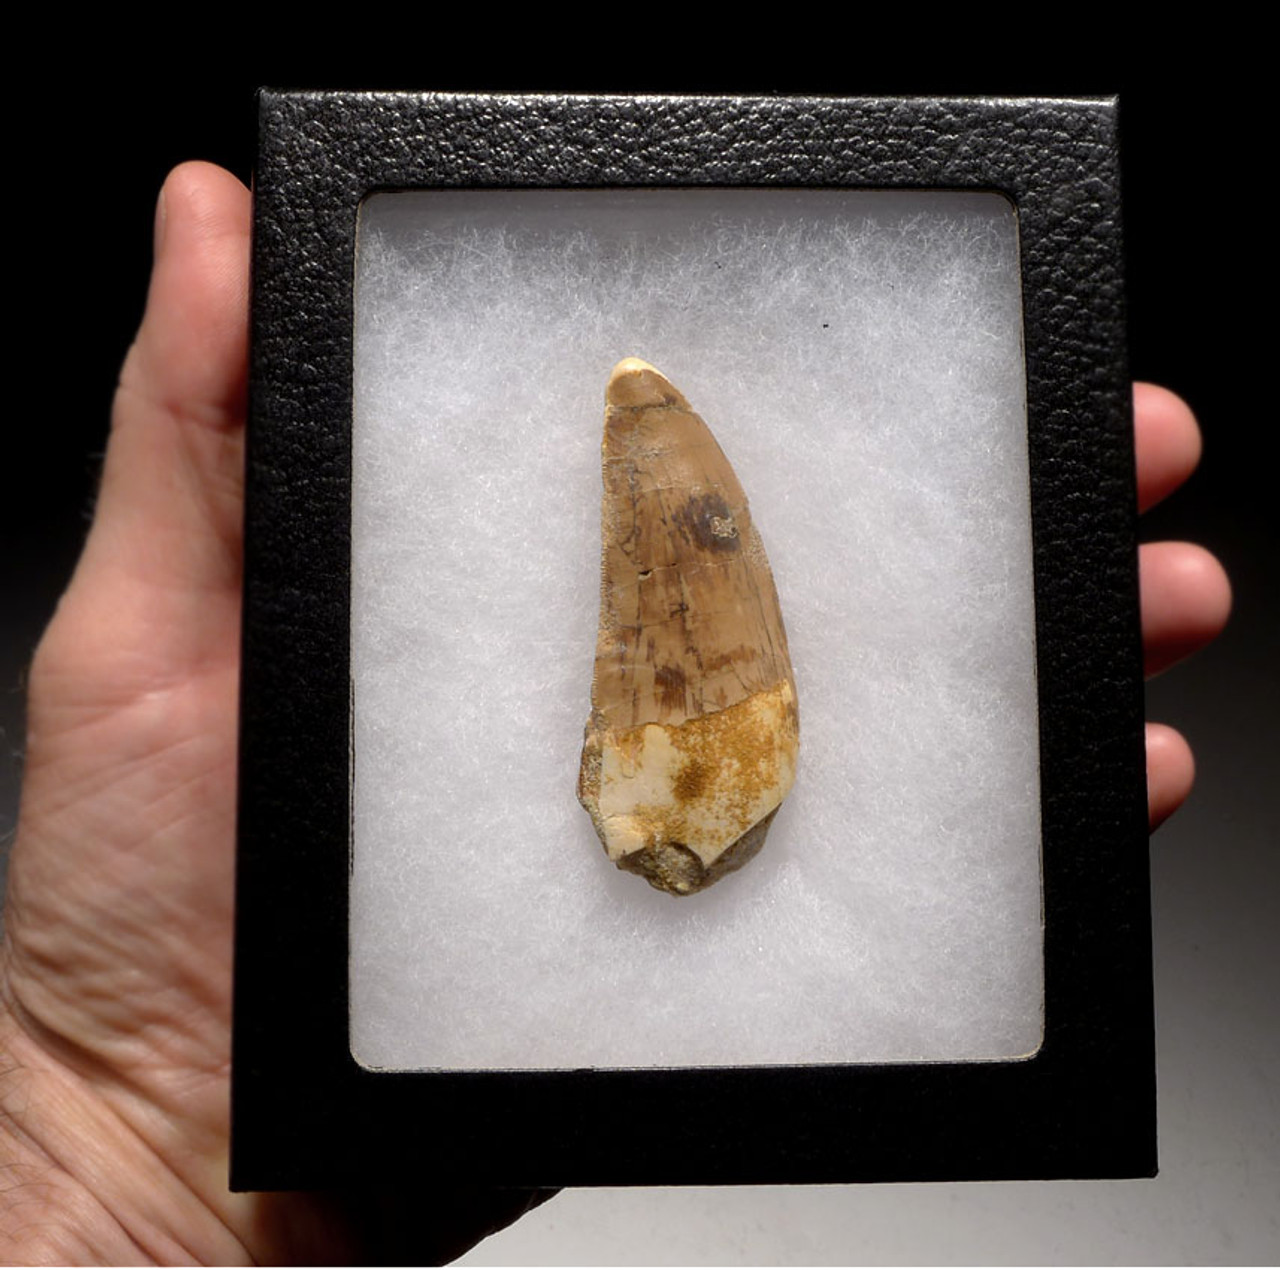 CARCHARODONTOSAURUS 3 INCH FOSSIL TOOTH FROM THE LARGEST MEAT-EATING DINOSAUR *DT2-086